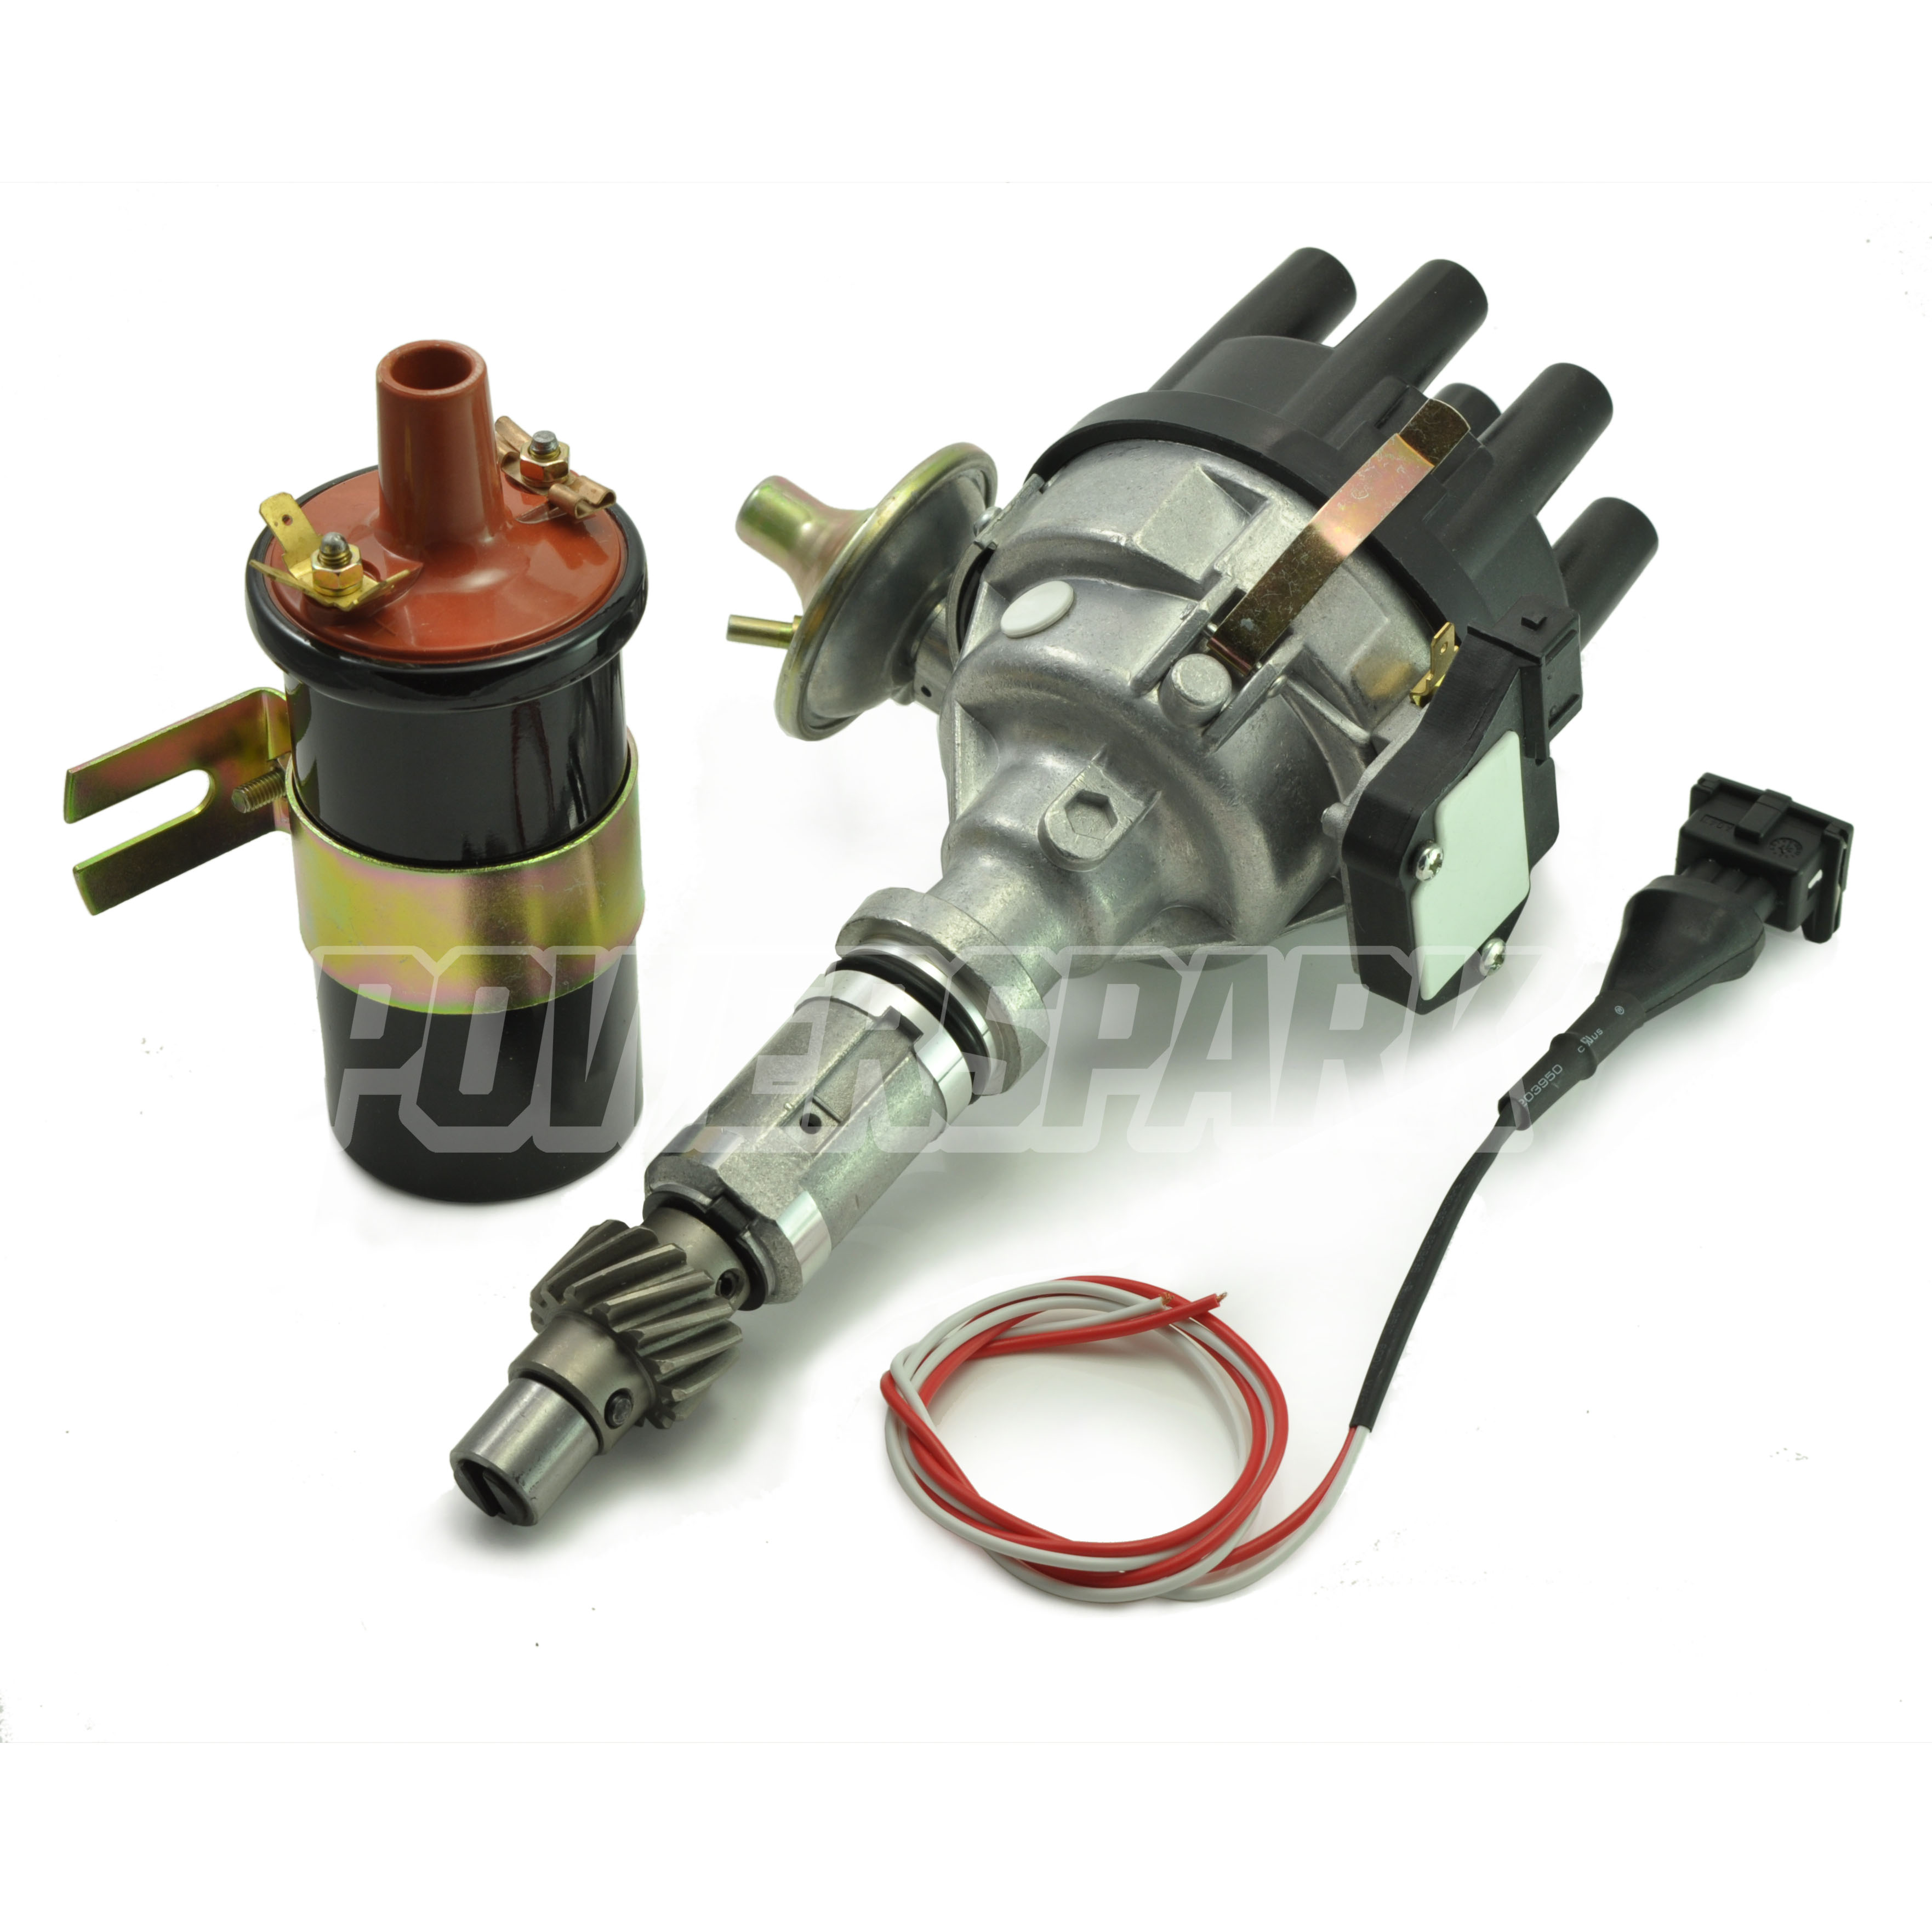 Land Rover Discovery 3 5 3 9 V8 Distributor Ignition Coil  U0026 Converter Lead